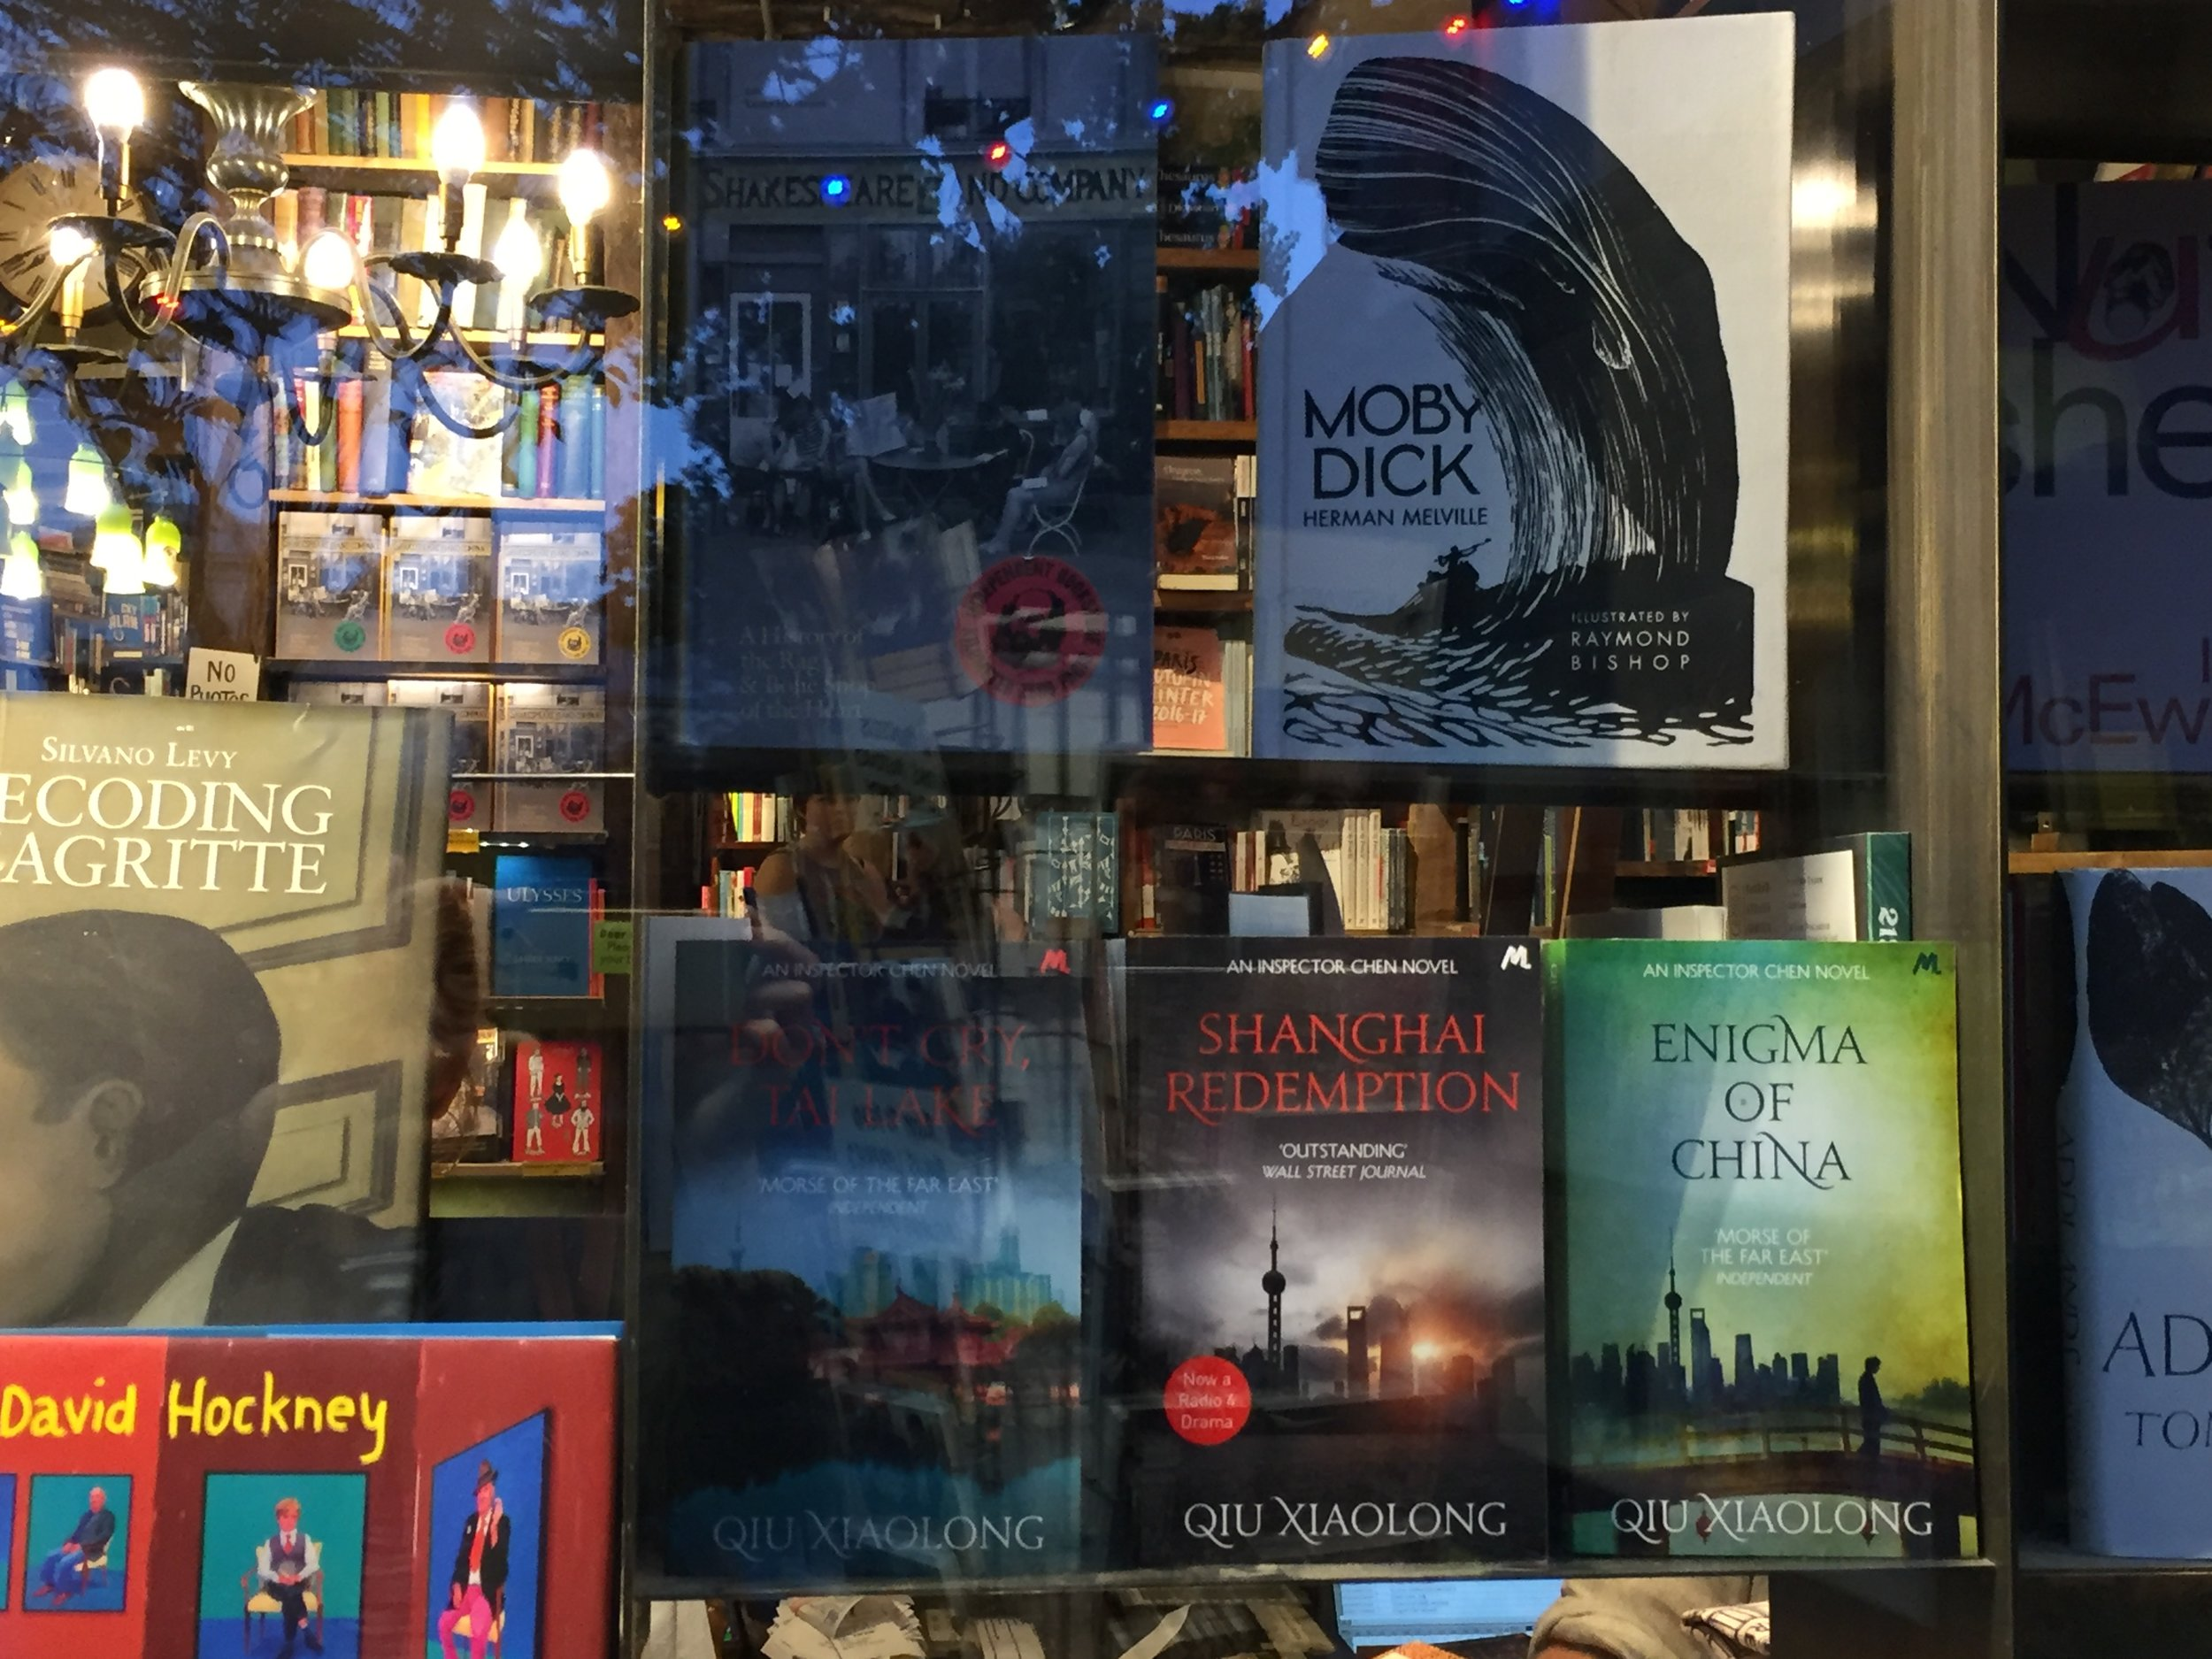 Qiu Xiaolong's books at Shakespeare and Company